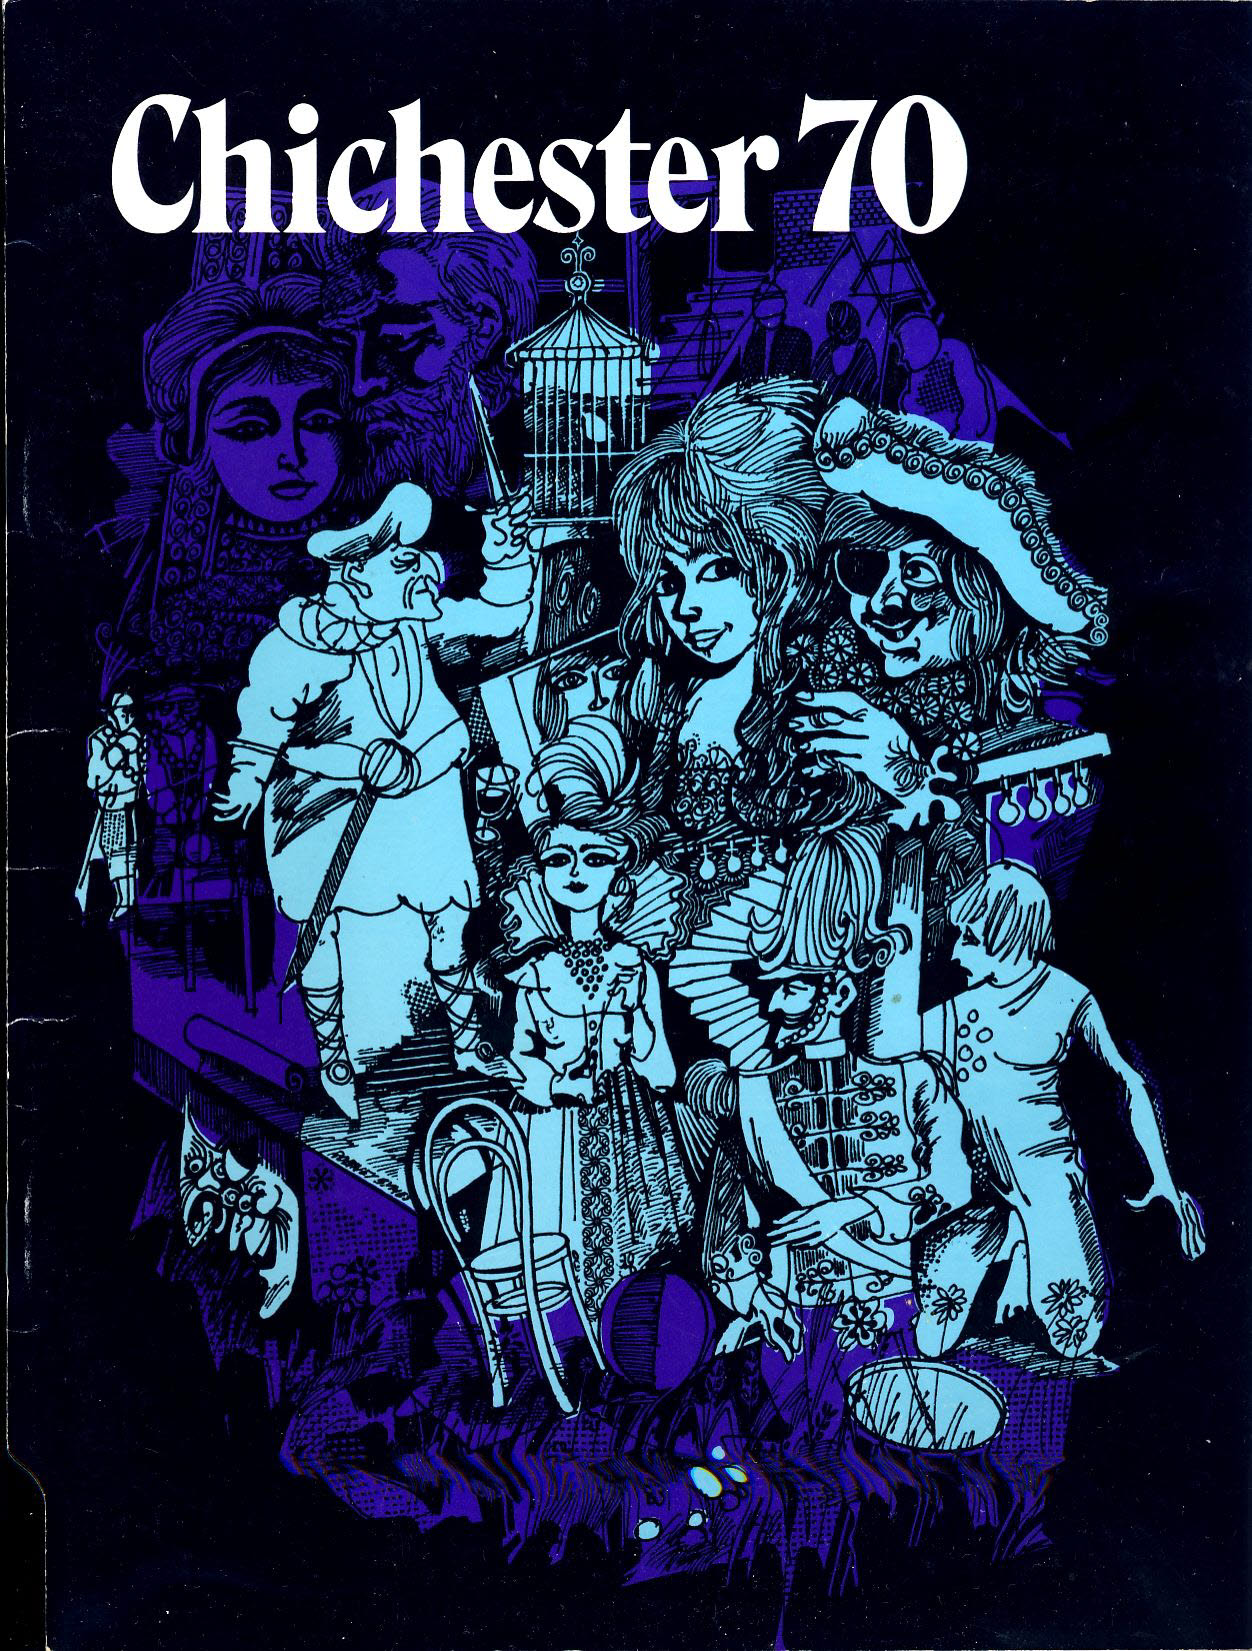 1970 Chichester 70 Vintage Theatre Programme 48 pages refb101206 Pre-owned Programme in Good Condition. Measures approx 21cm x 28cm Please read full description.